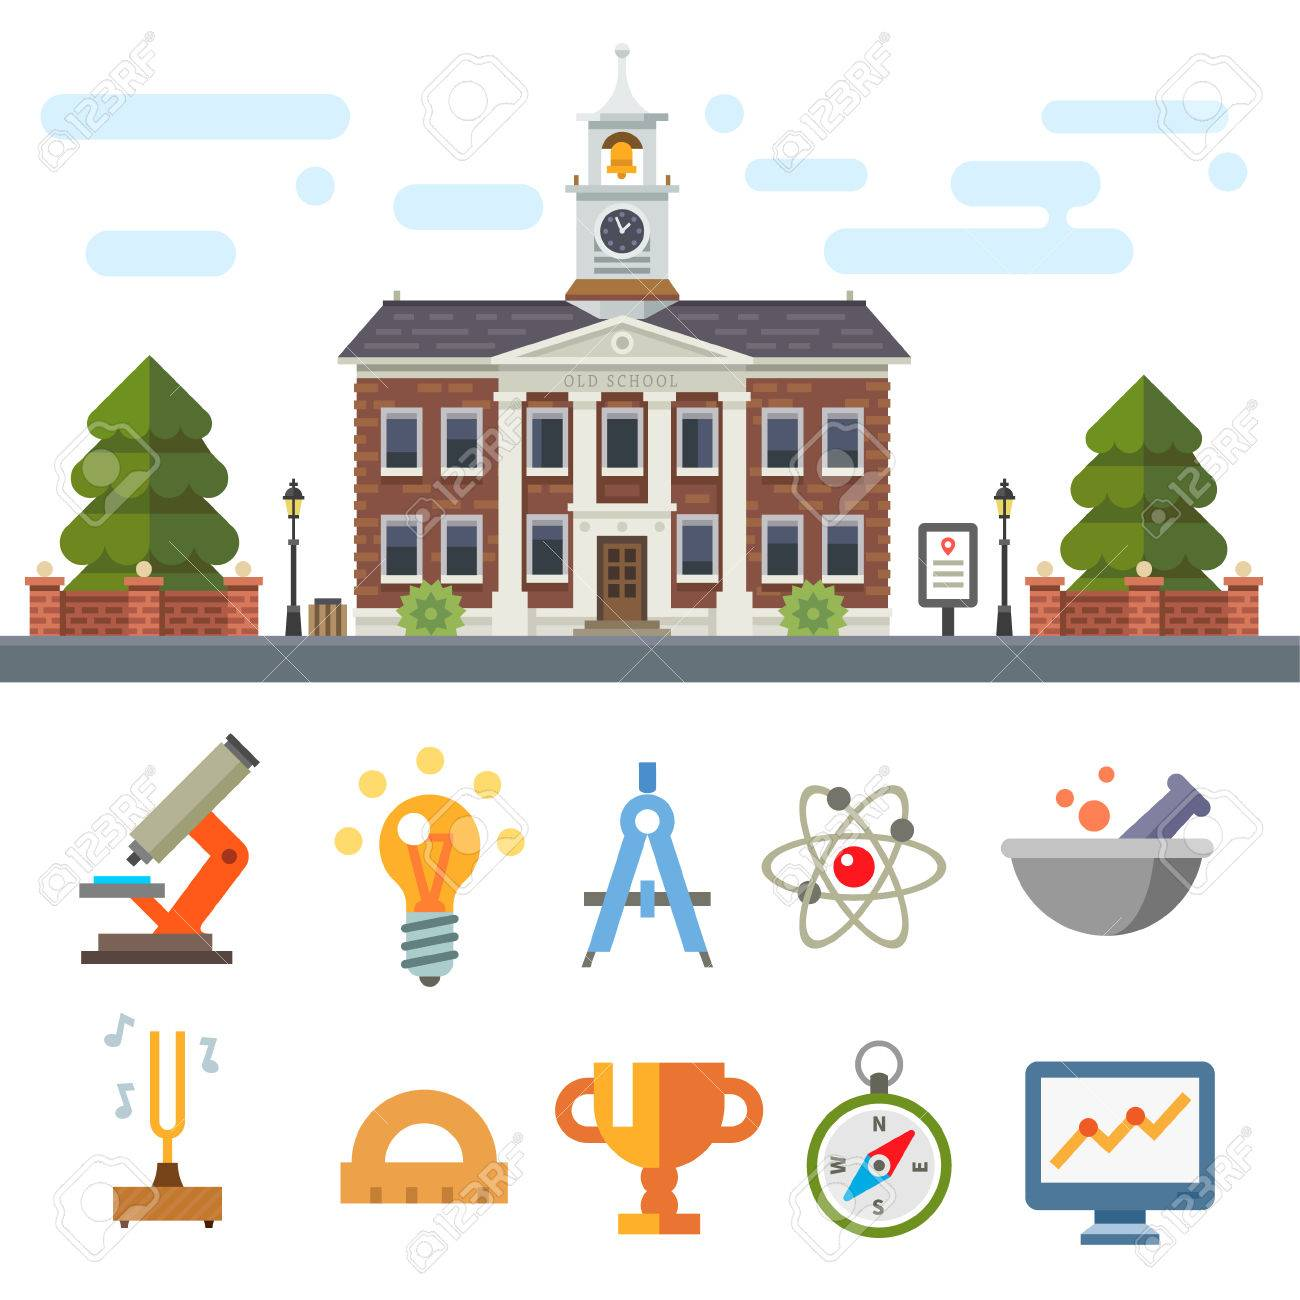 School Building Cityscape Symbols Of Education And Science